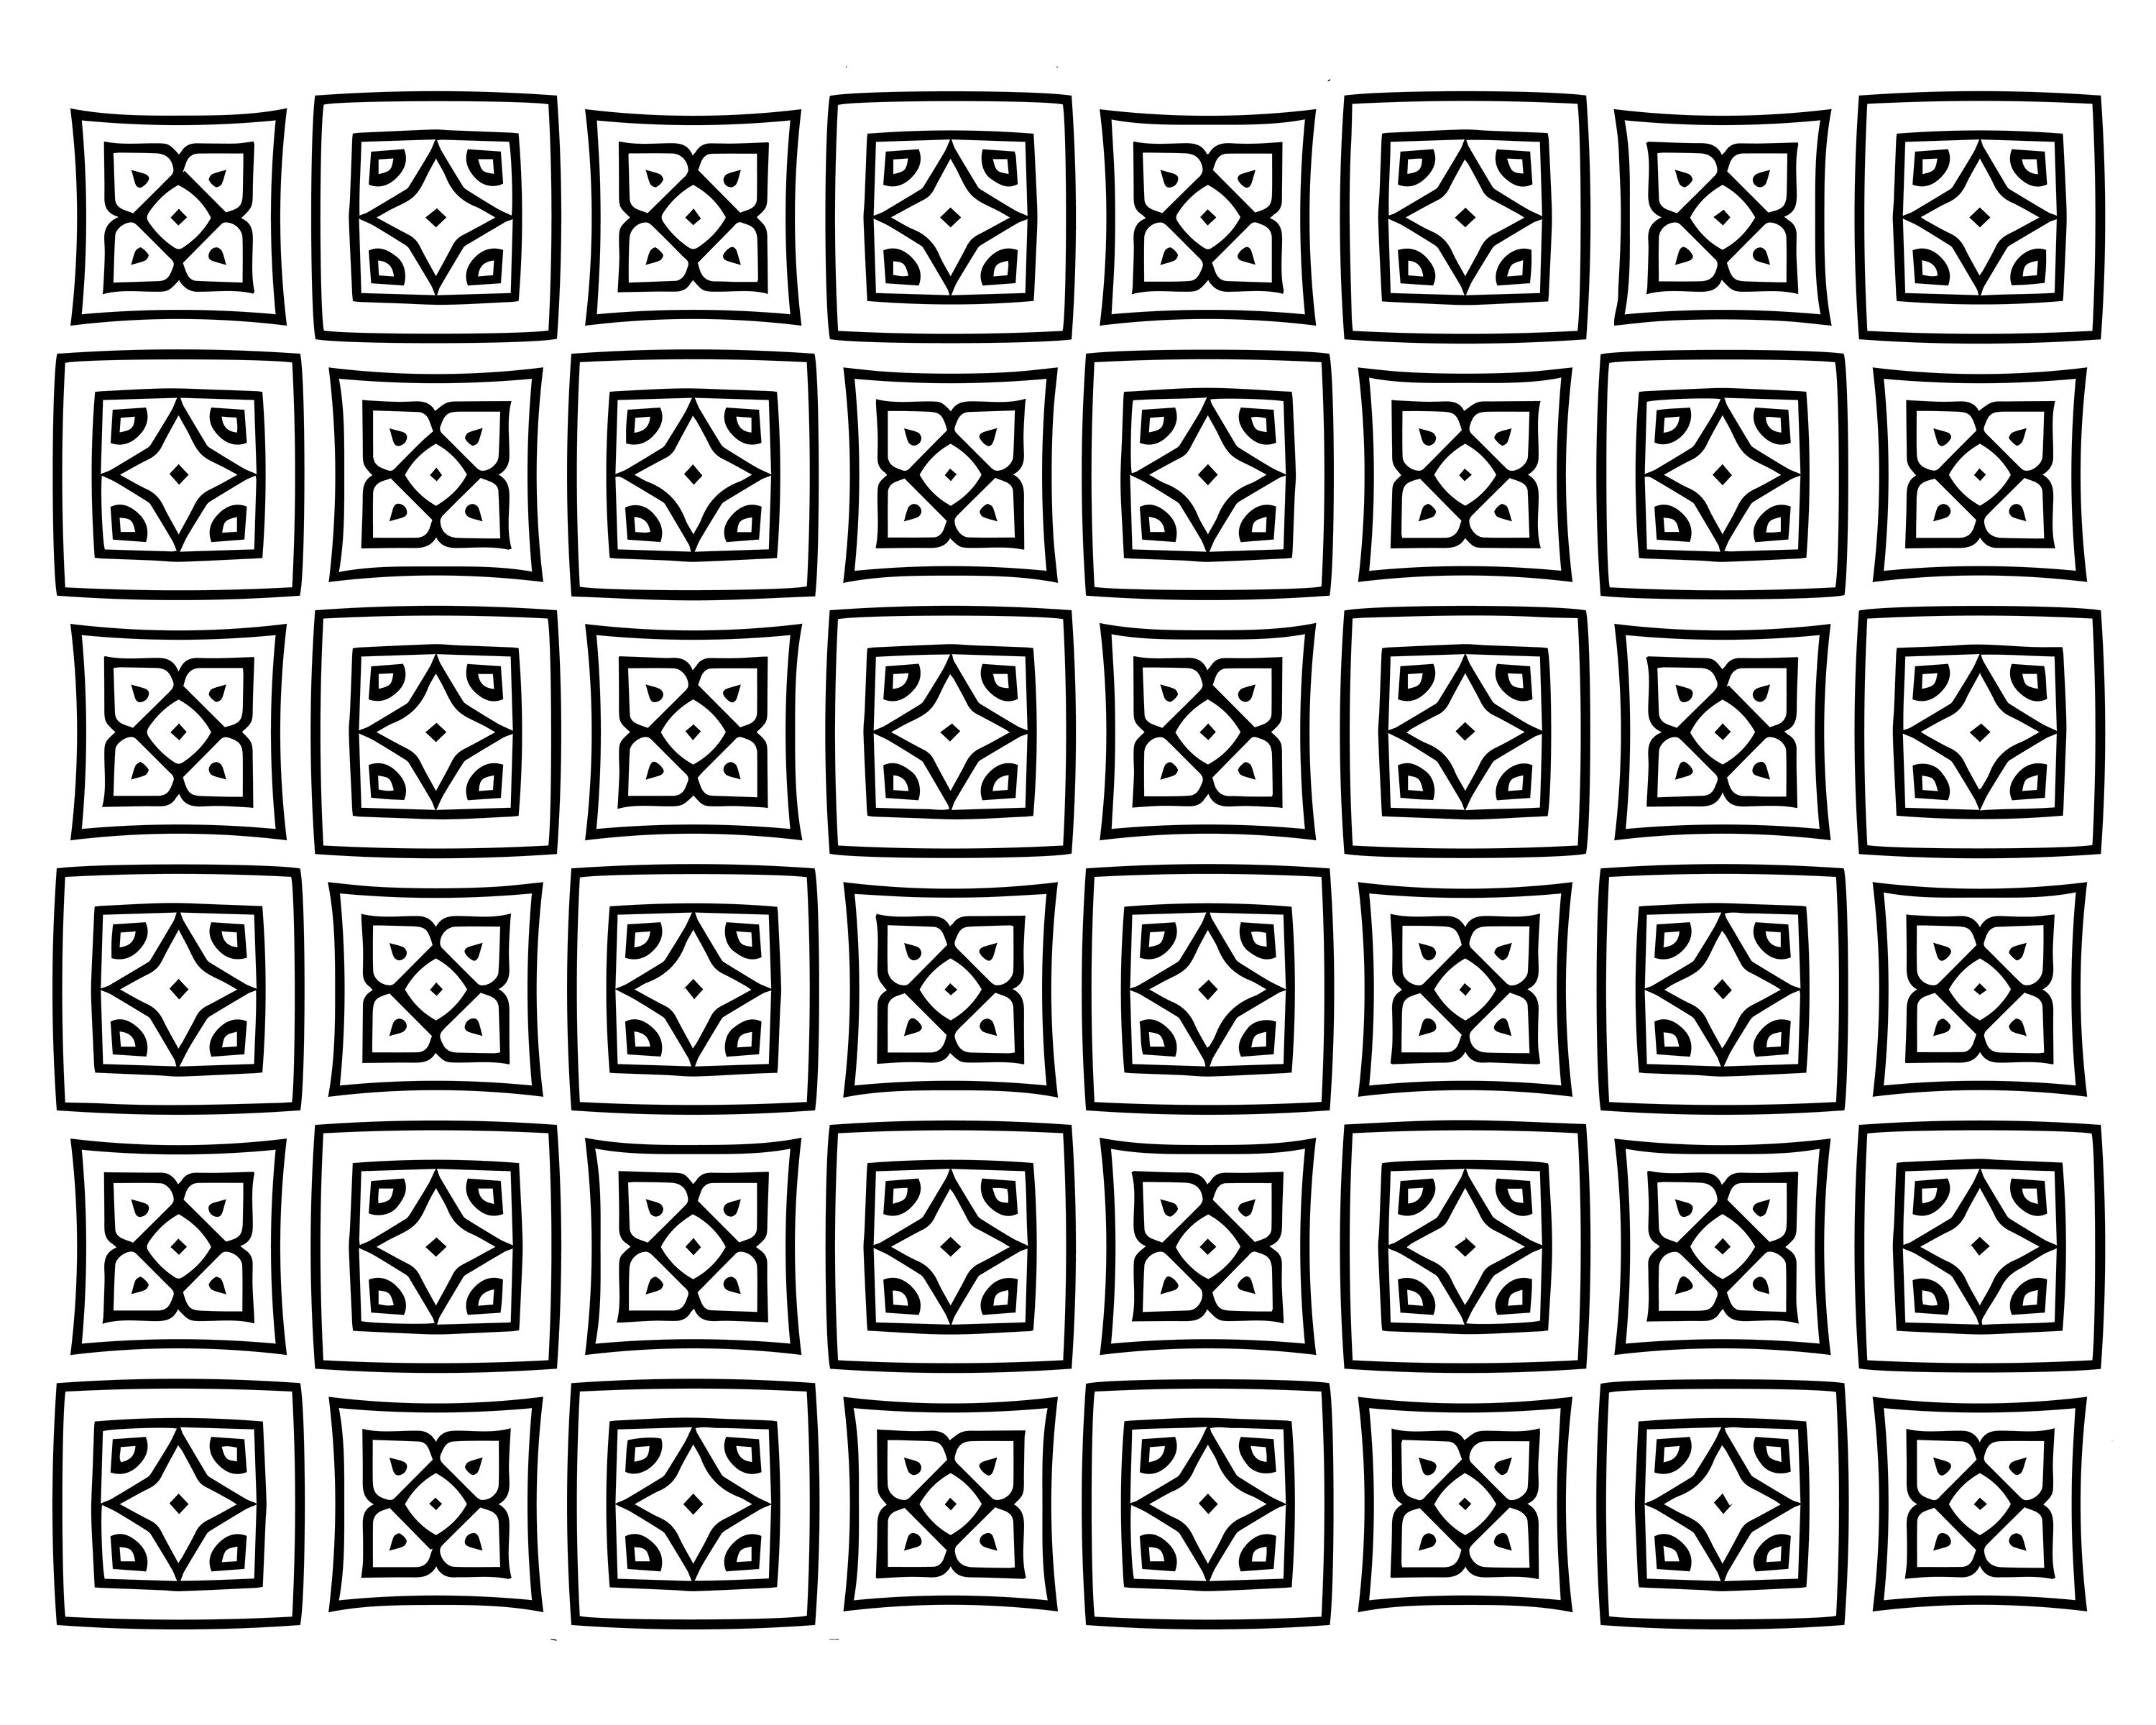 FREE Square Quilt Pattern Adult Coloring Page FREE Printable